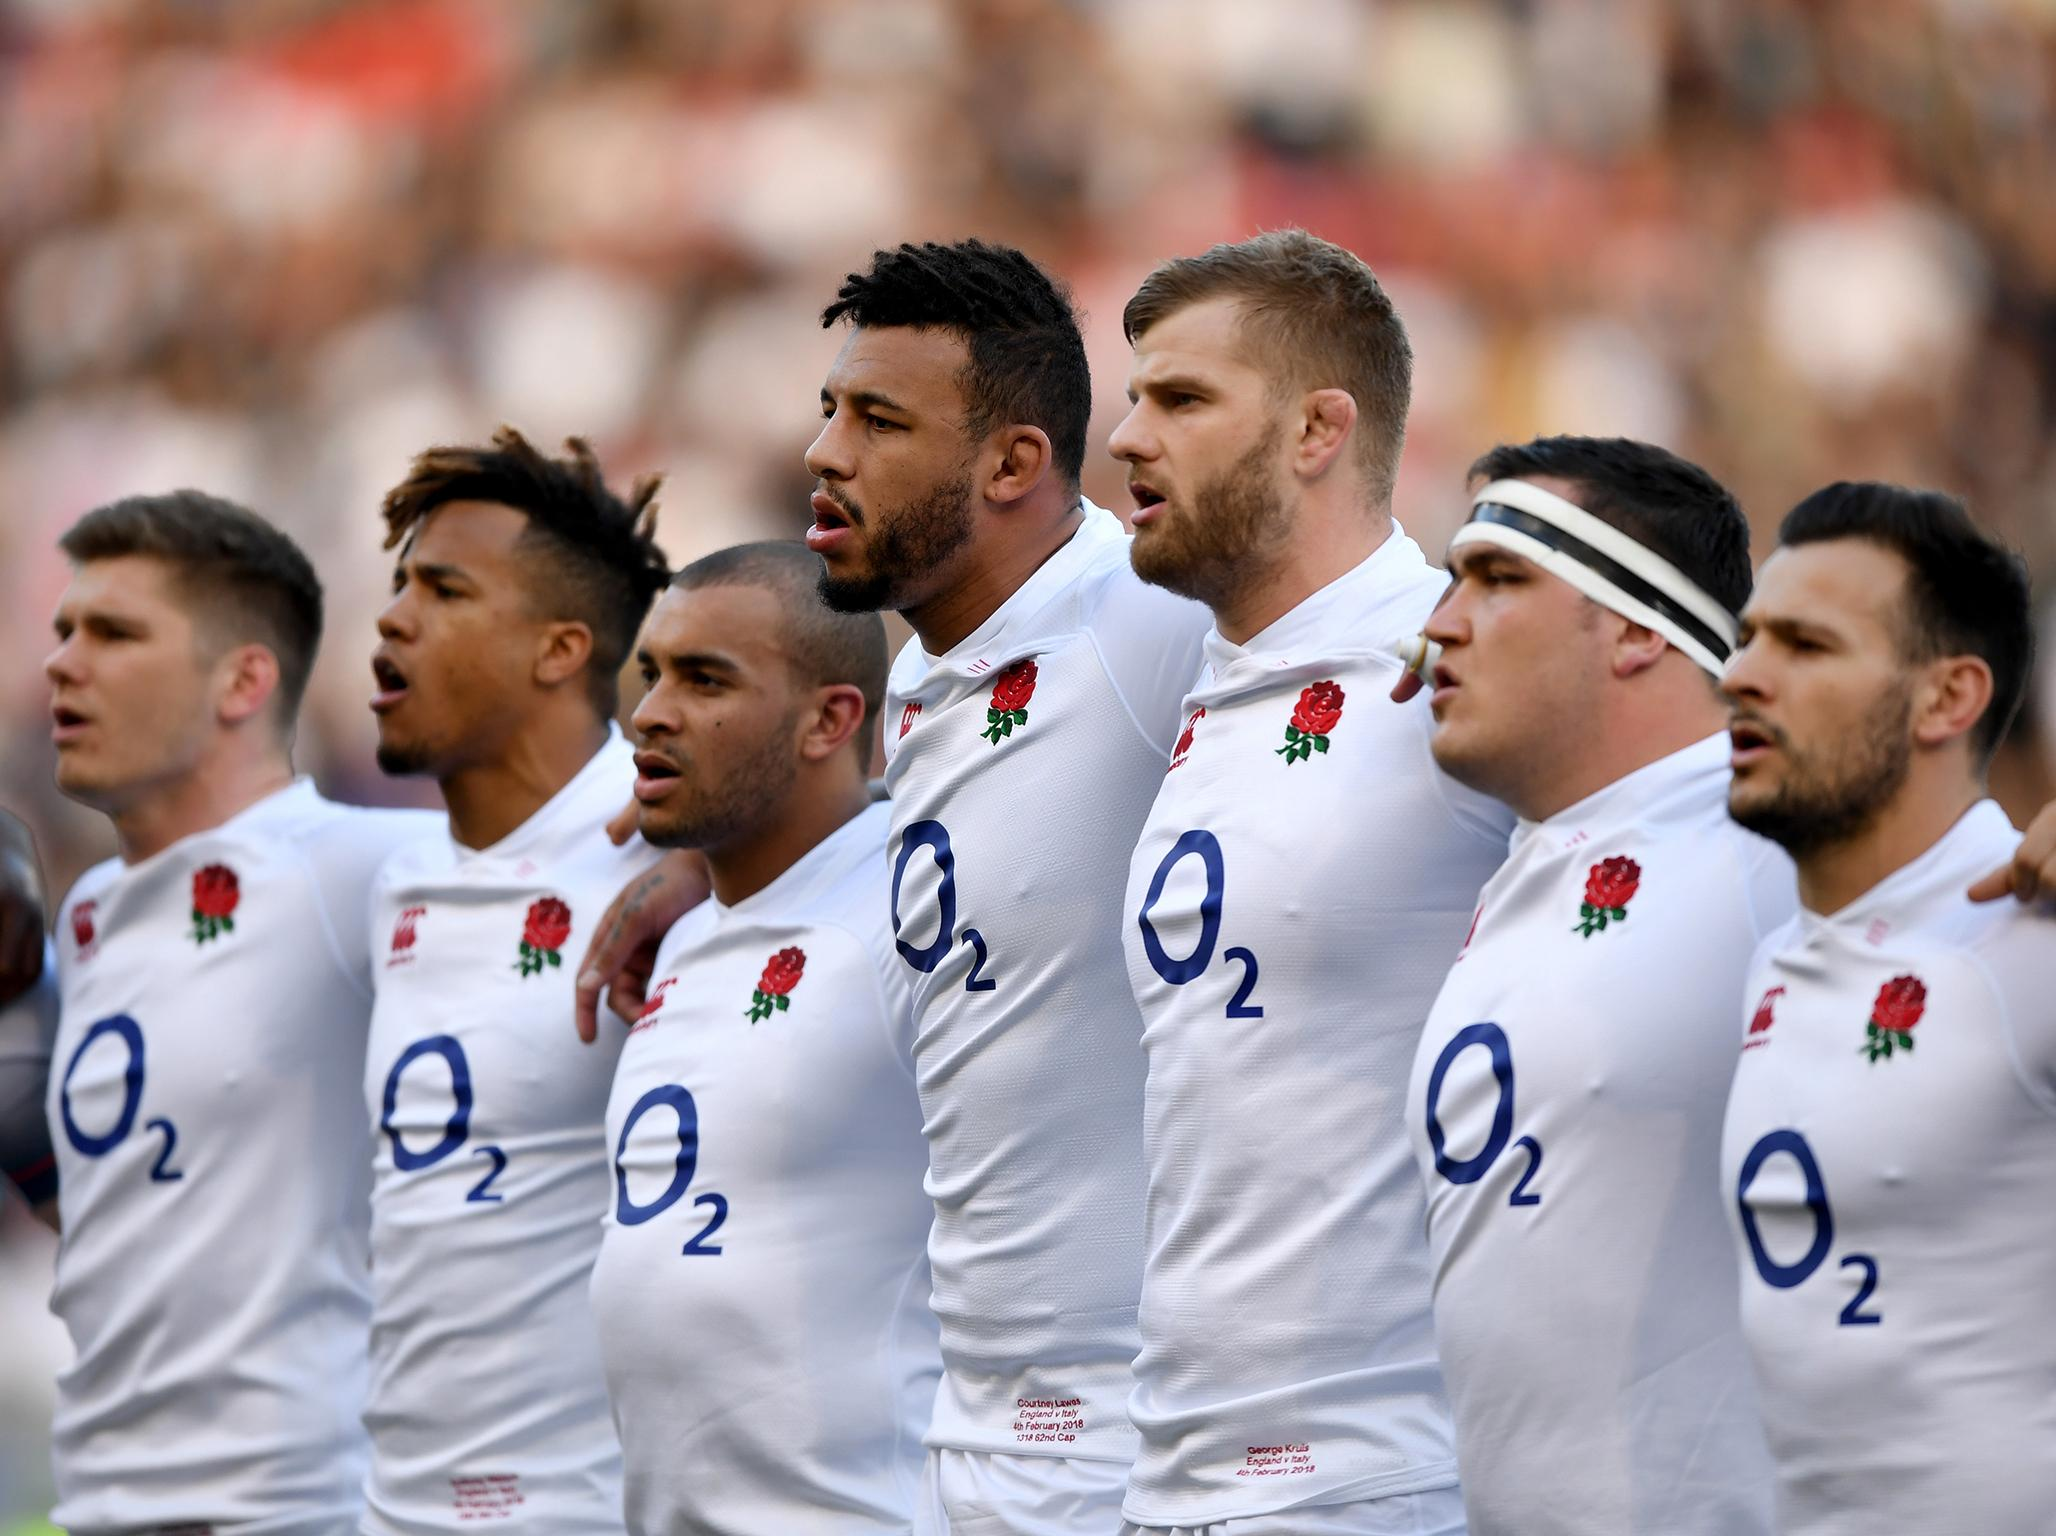 england rugby - photo #14